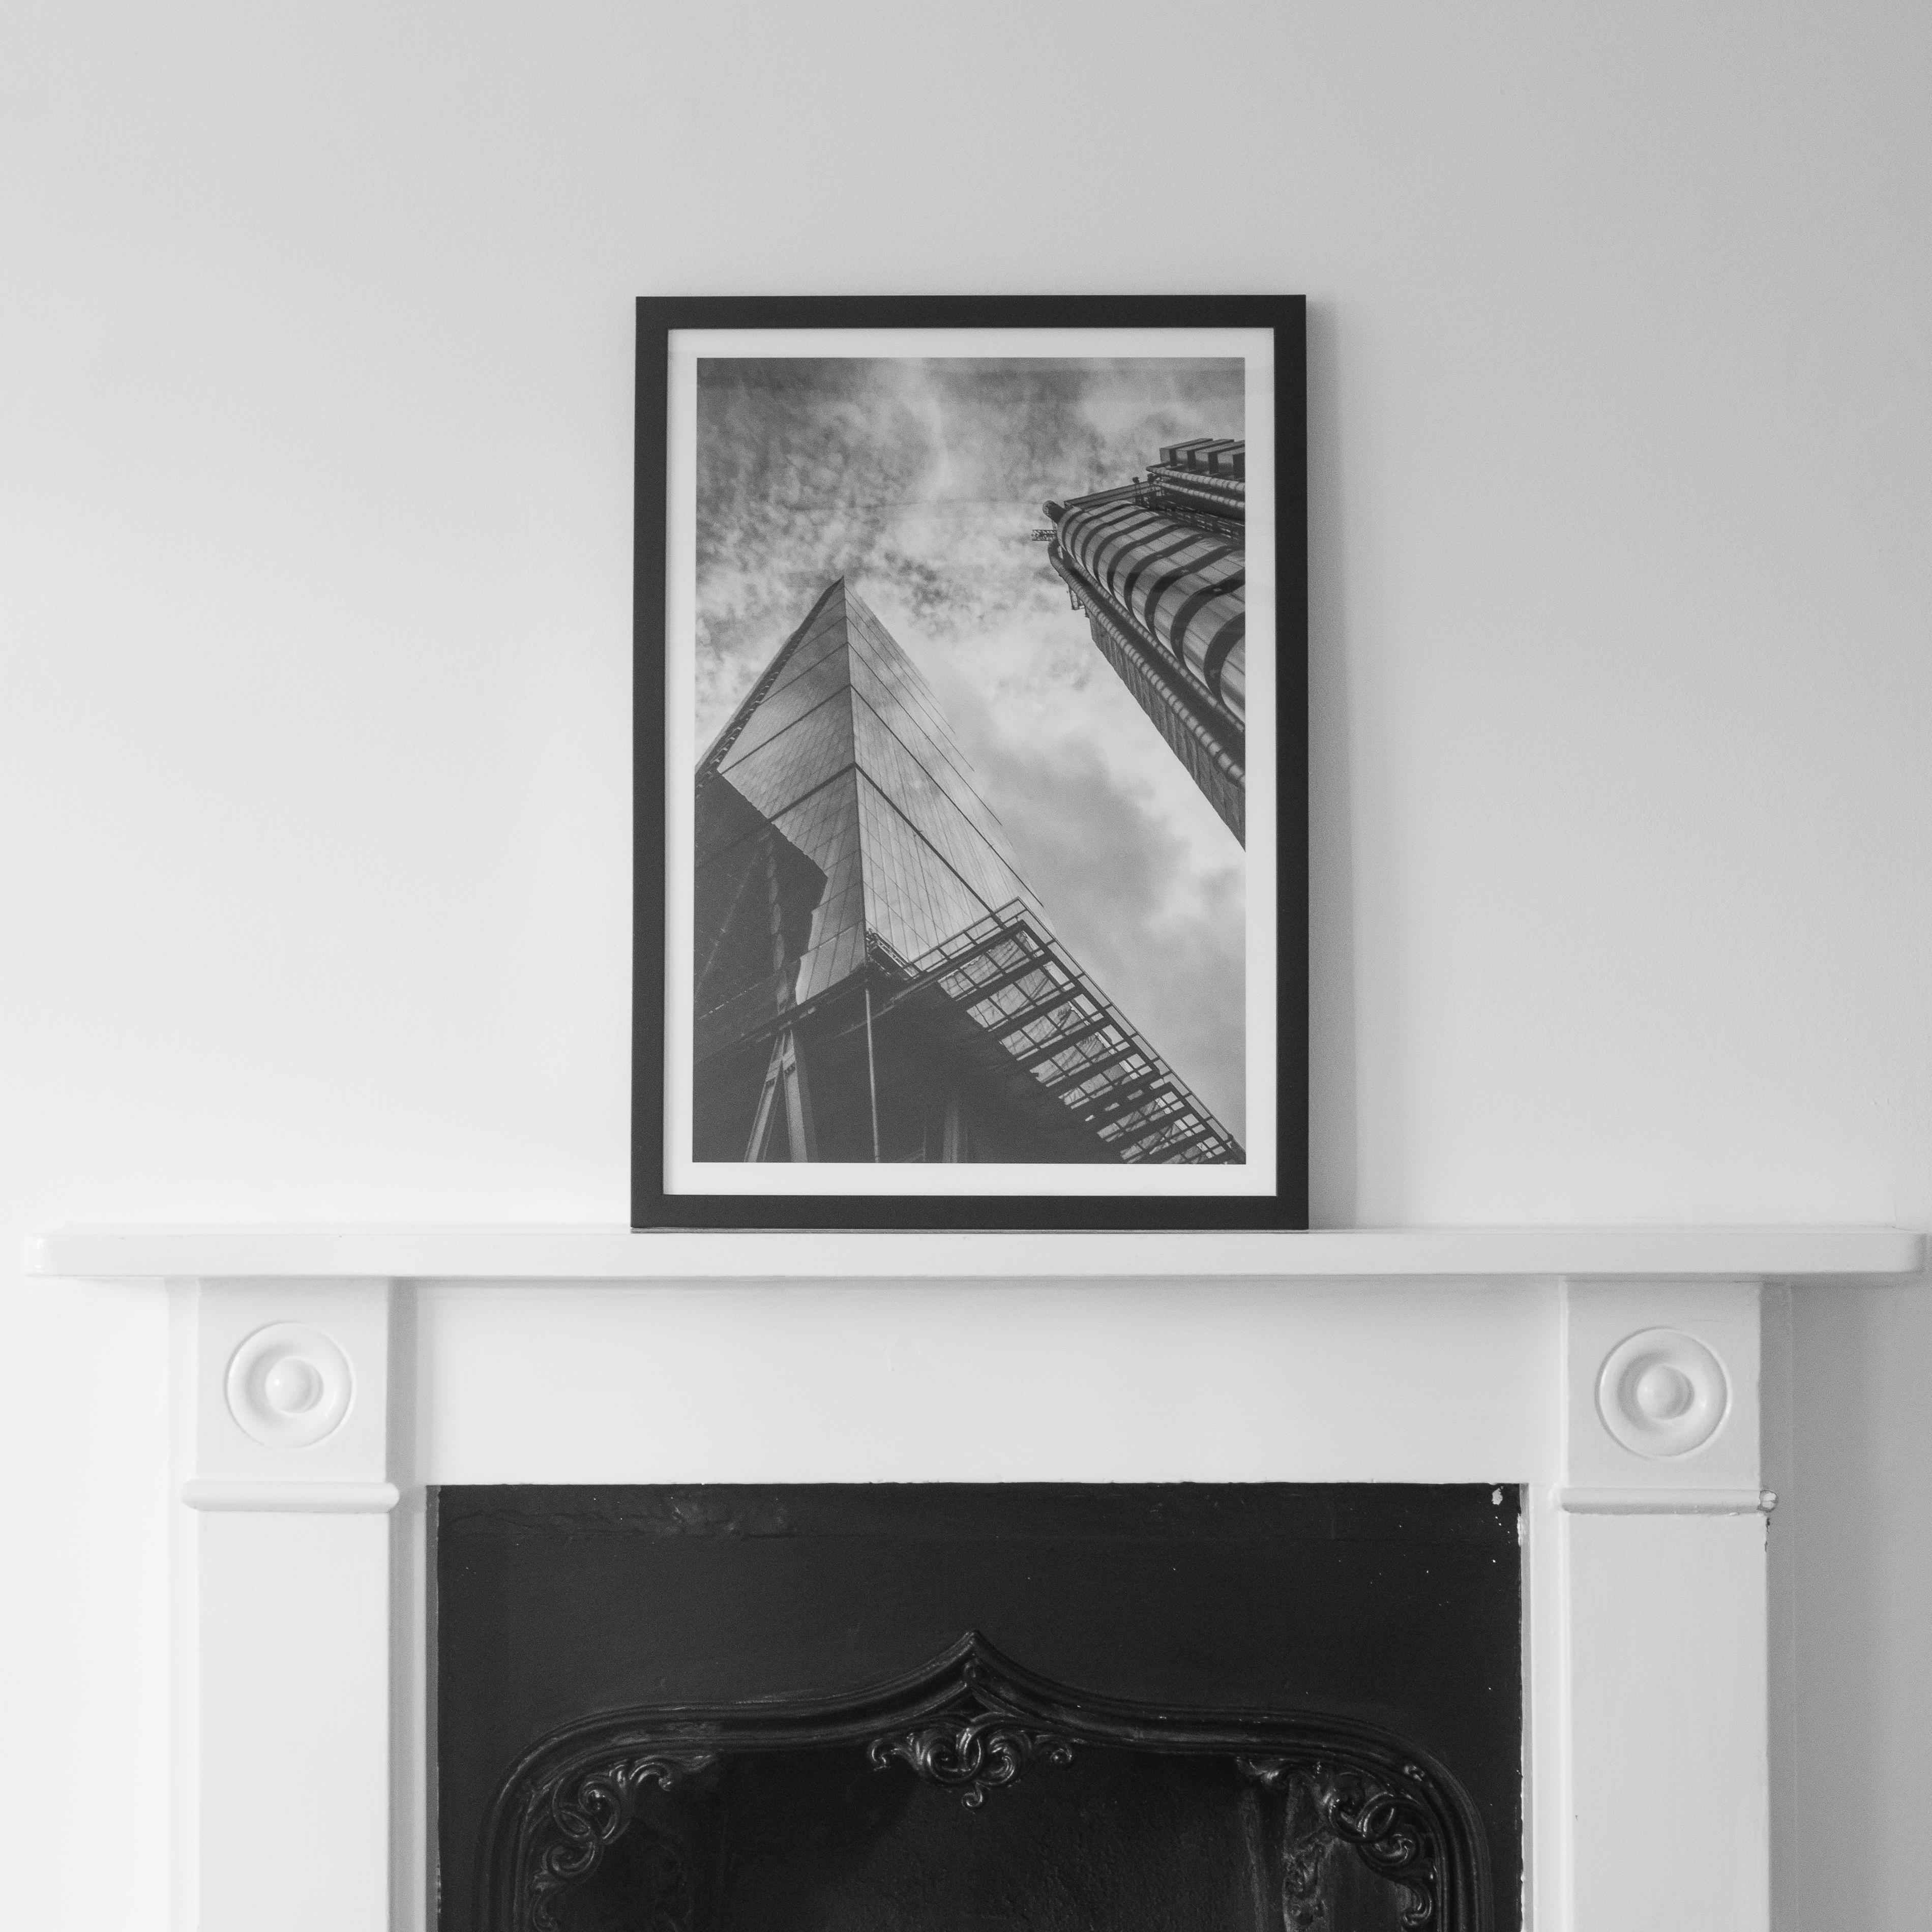 An image called Cheesegrater on a fireplace. A black and white image.